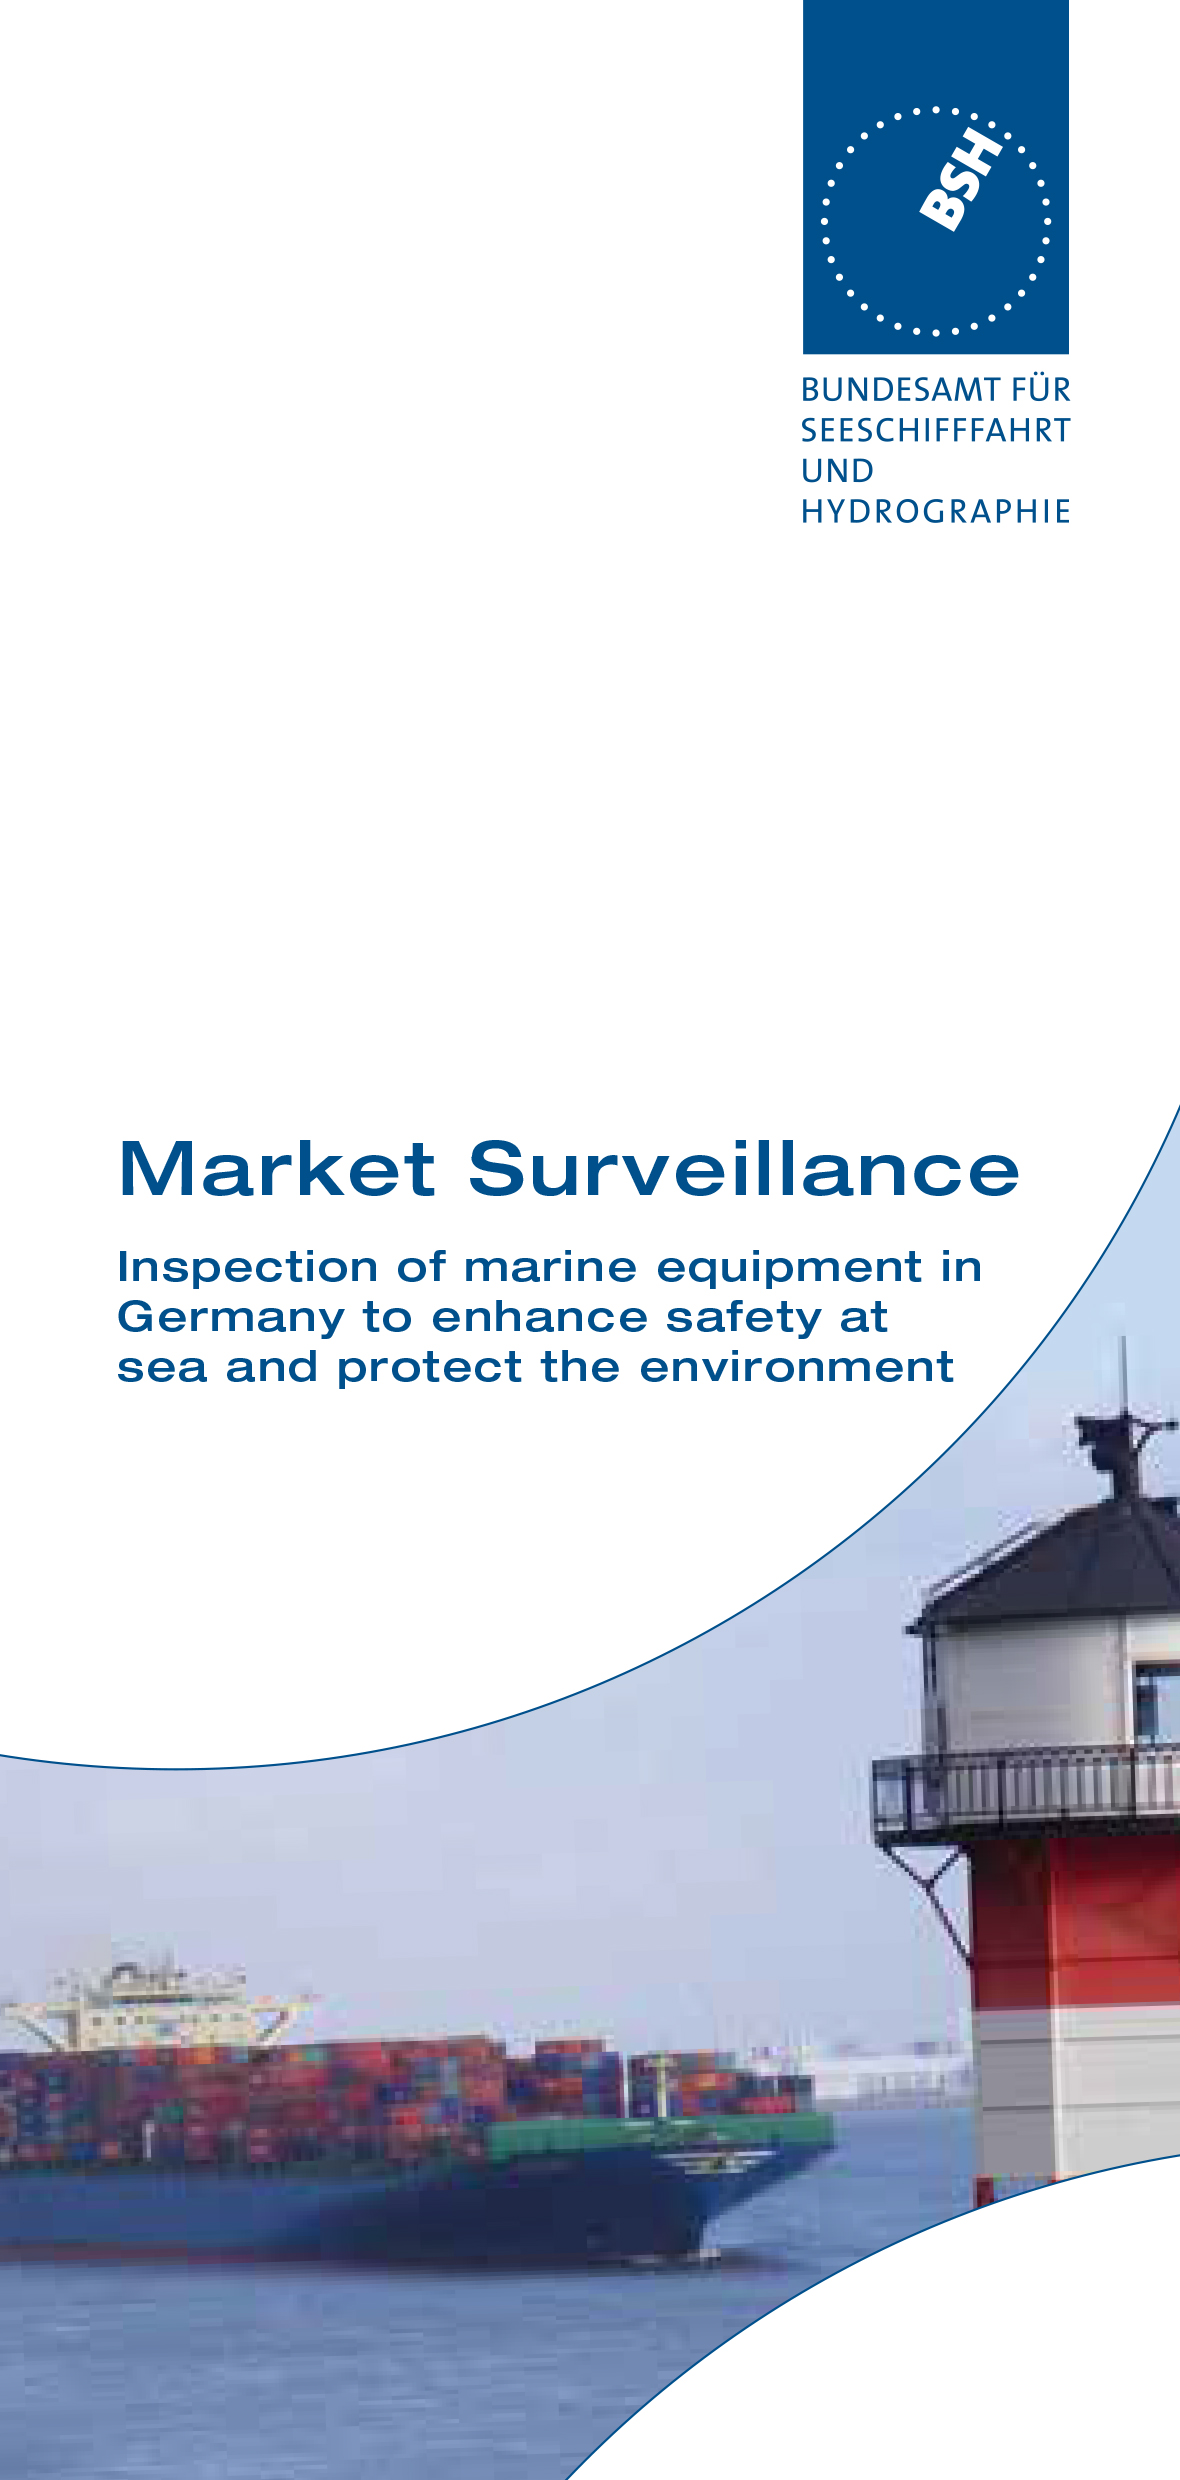 Titelblatt des Flyers Market Surveillance  Inspection of marine equipment in Germany